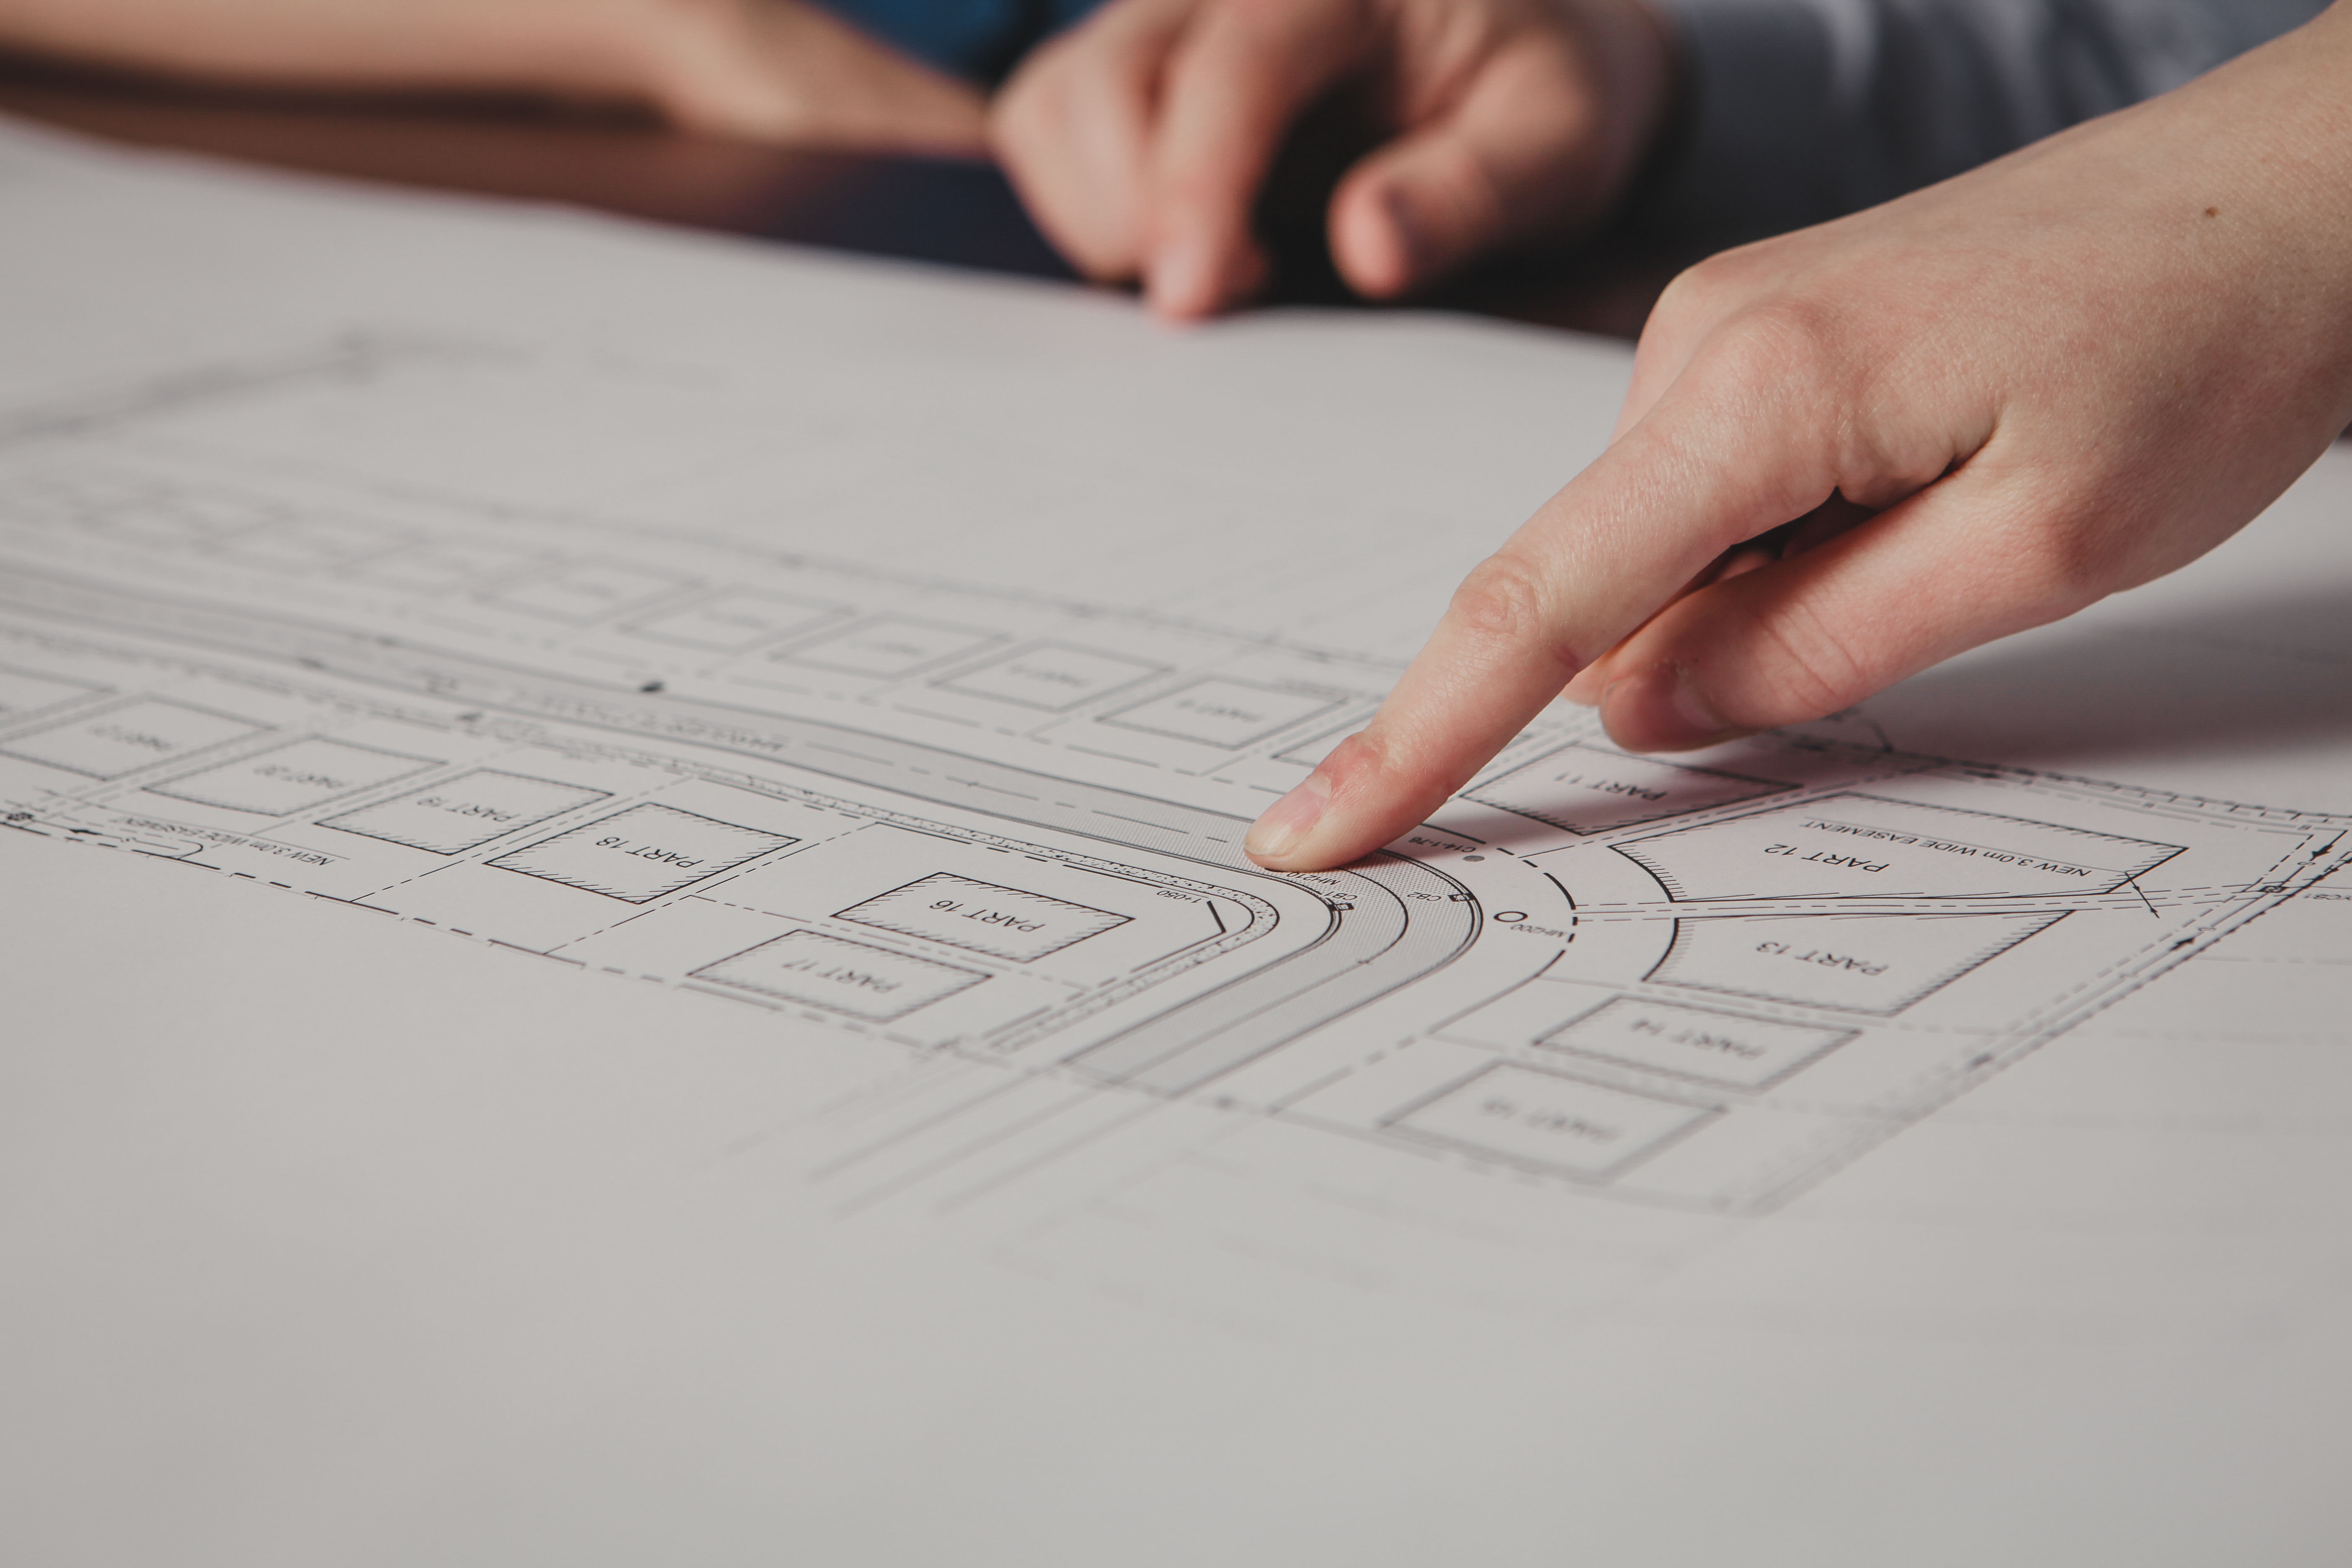 Hand pointing at a section on an engineering plan